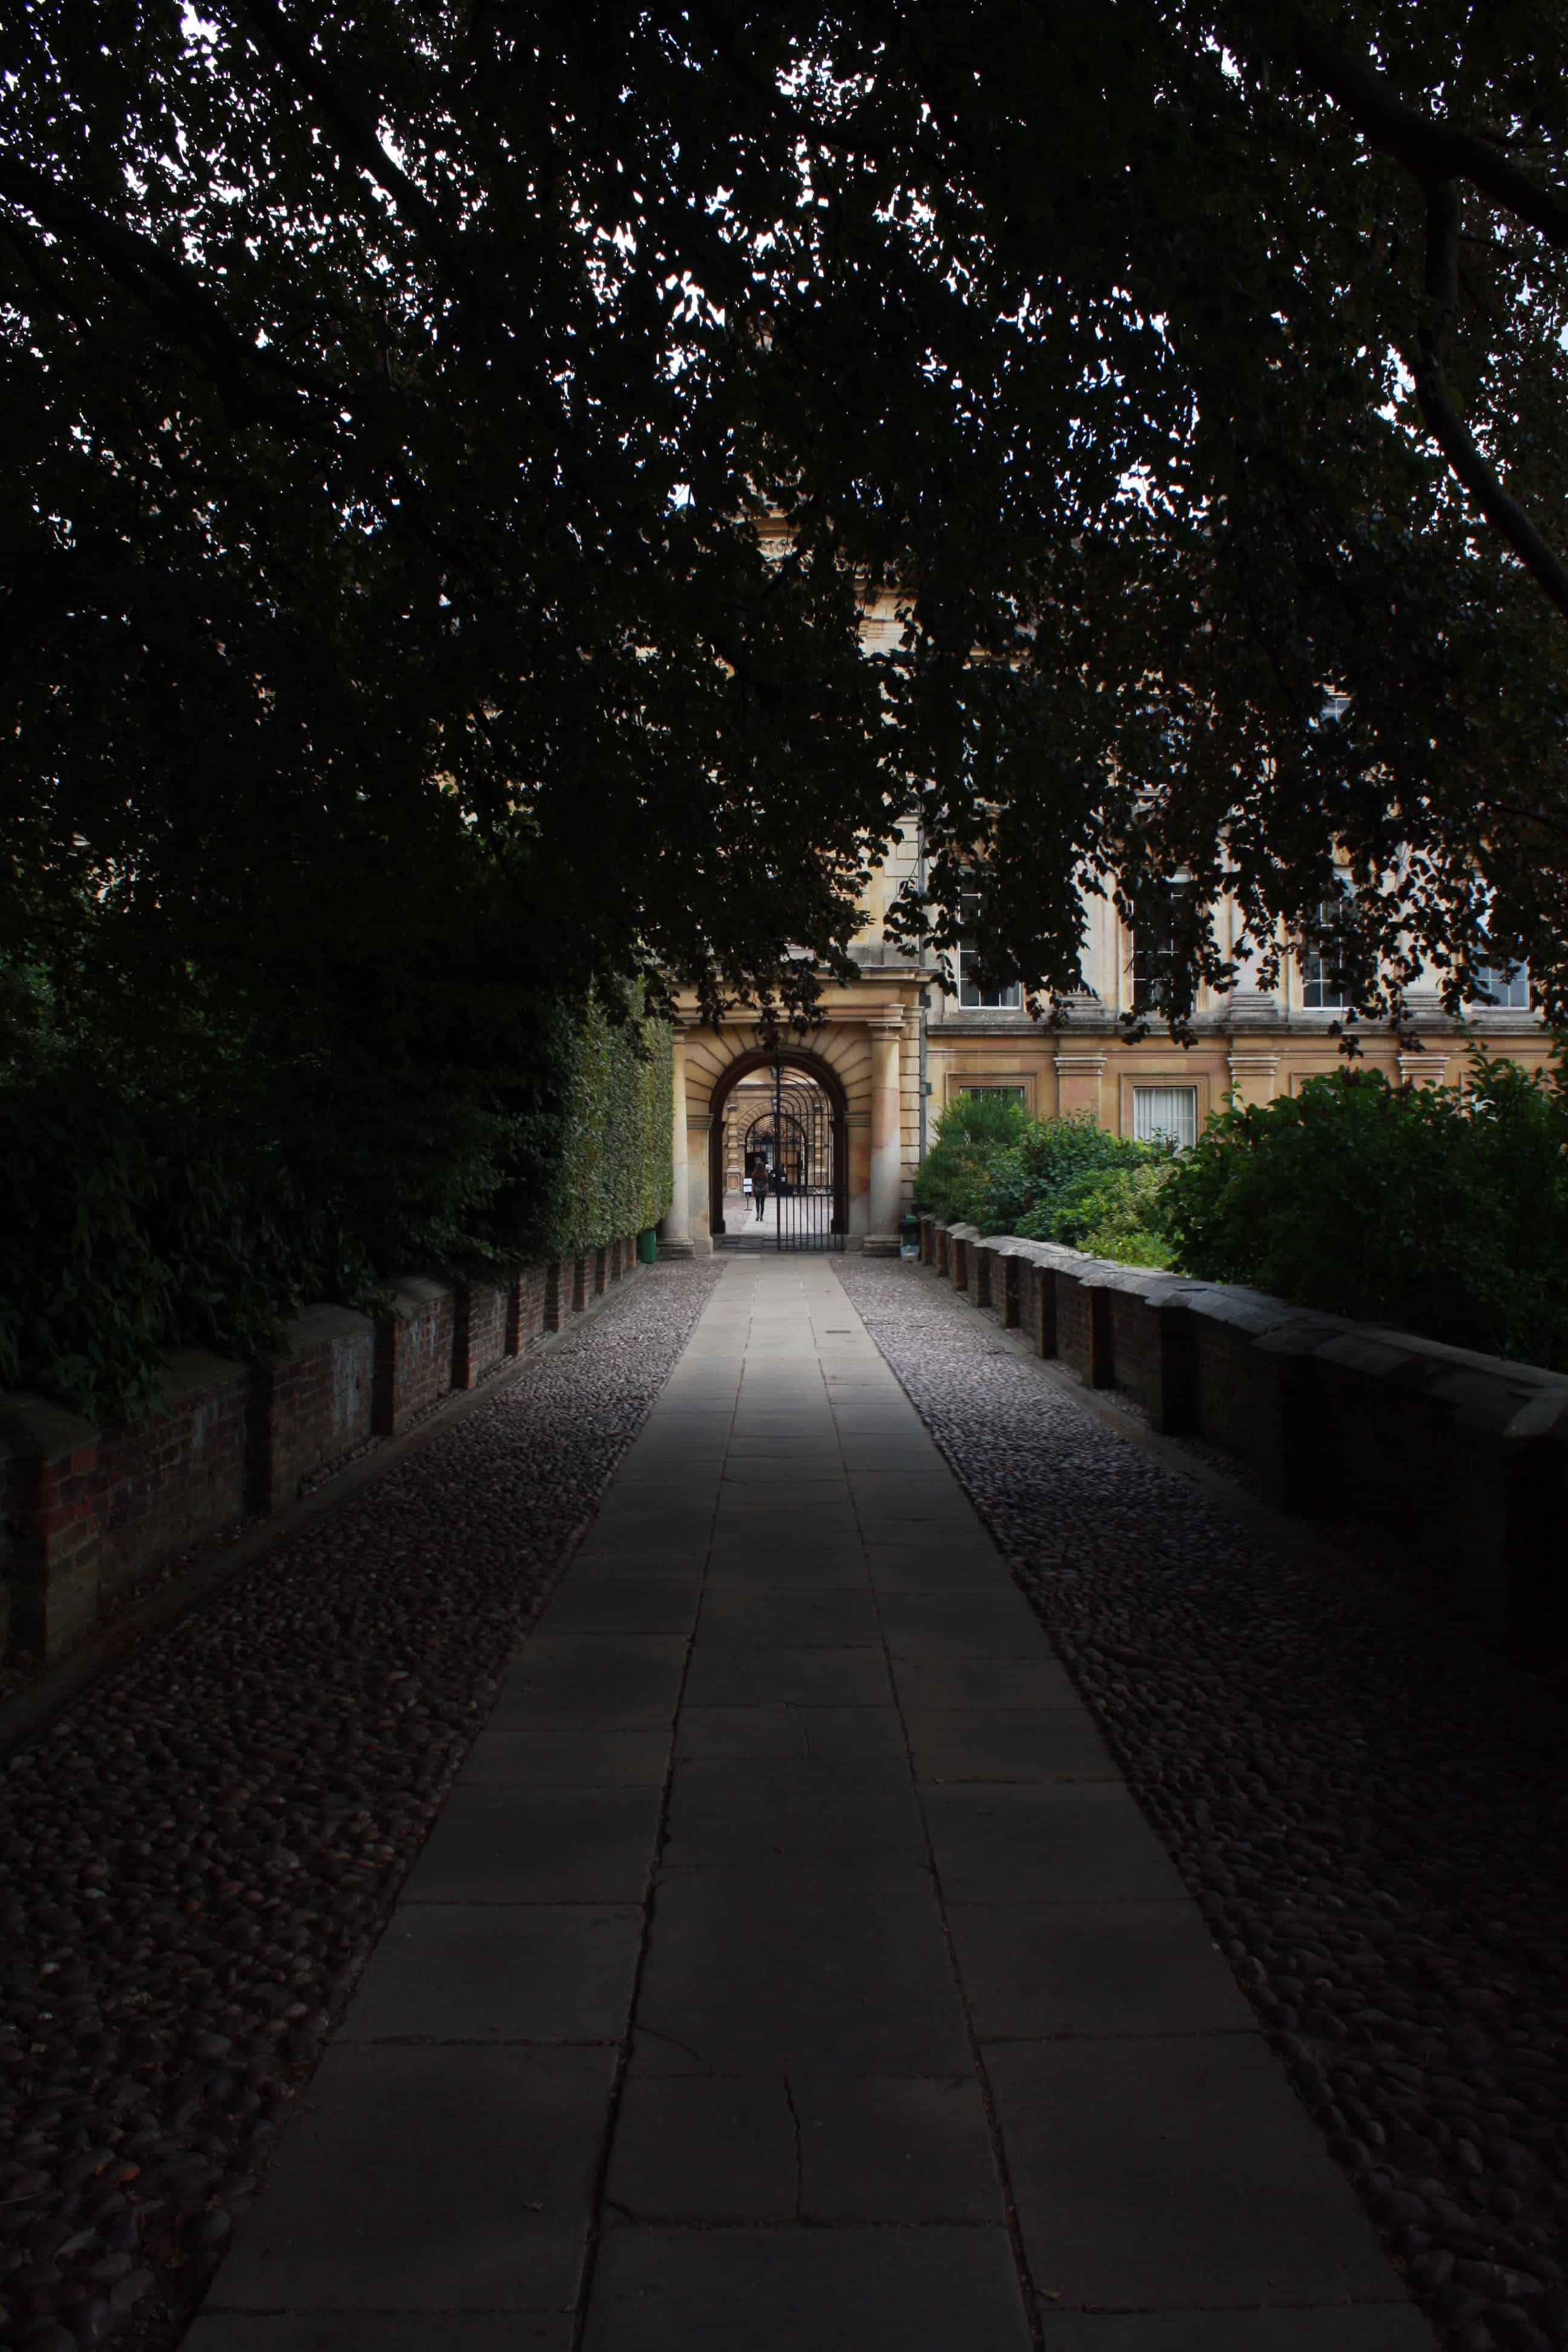 Clare College through the trees